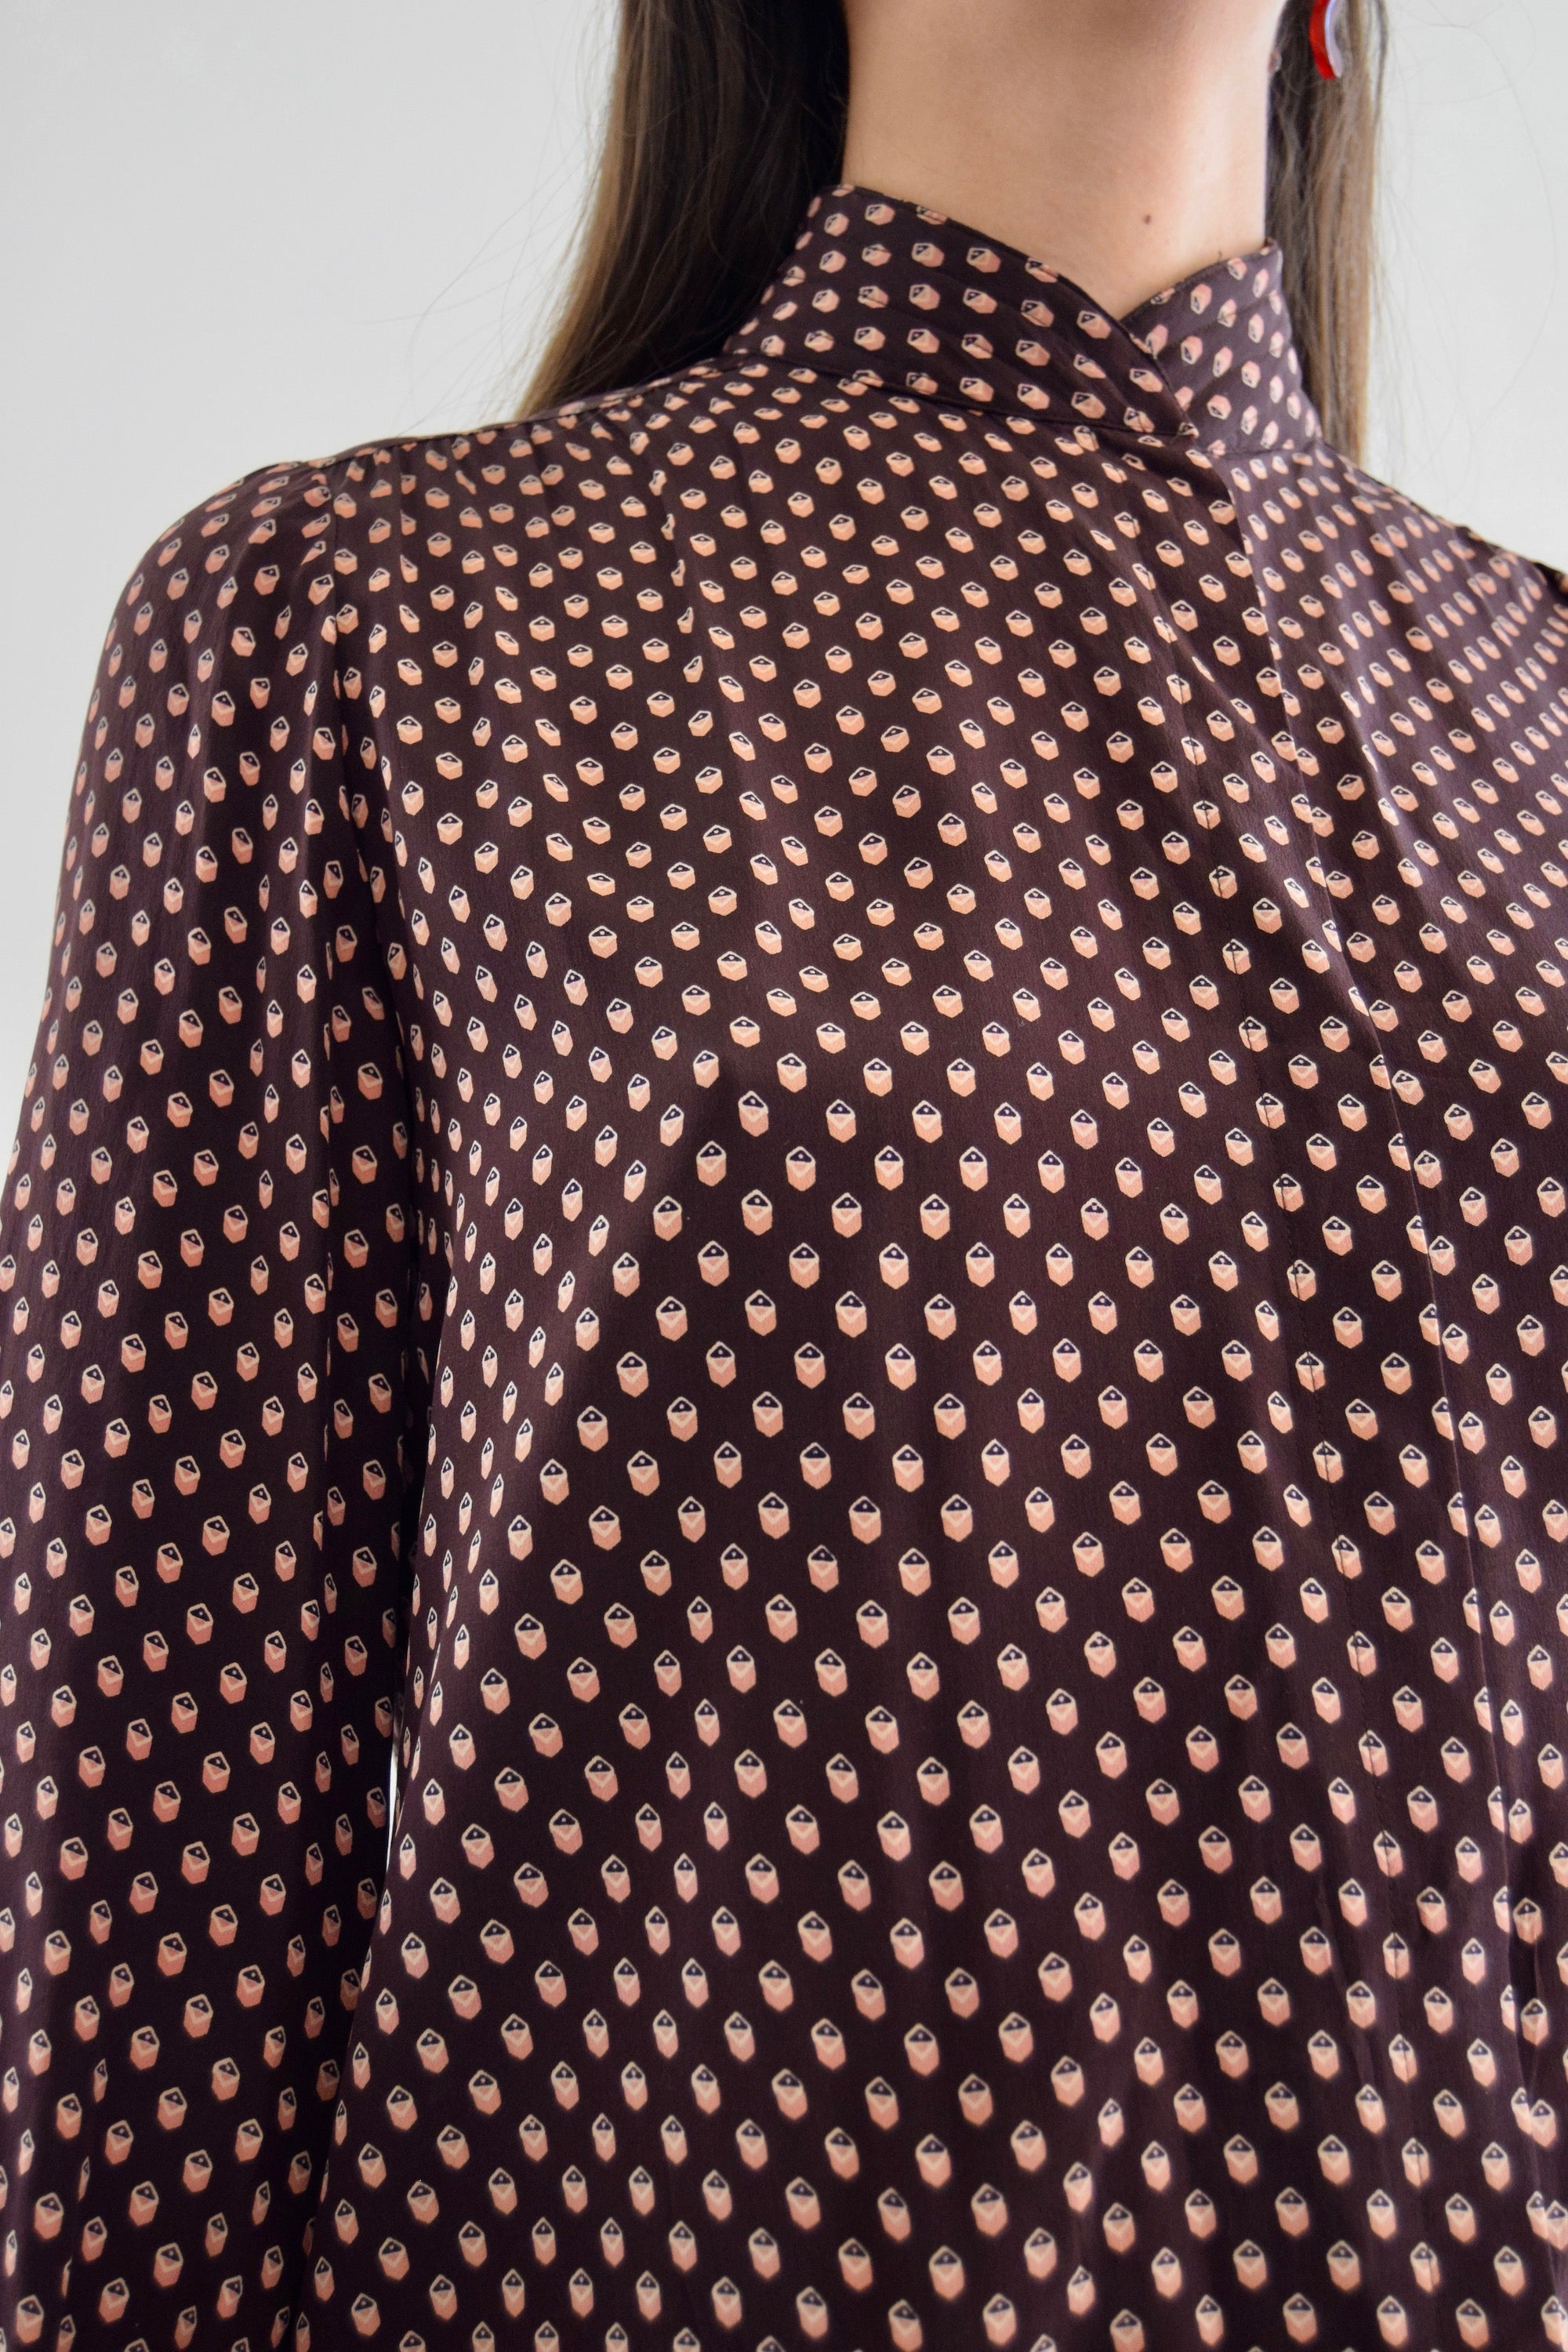 80's Anne Crimmins for UMI Printed Silk Blouse FREE SHIPPING TO U.S.